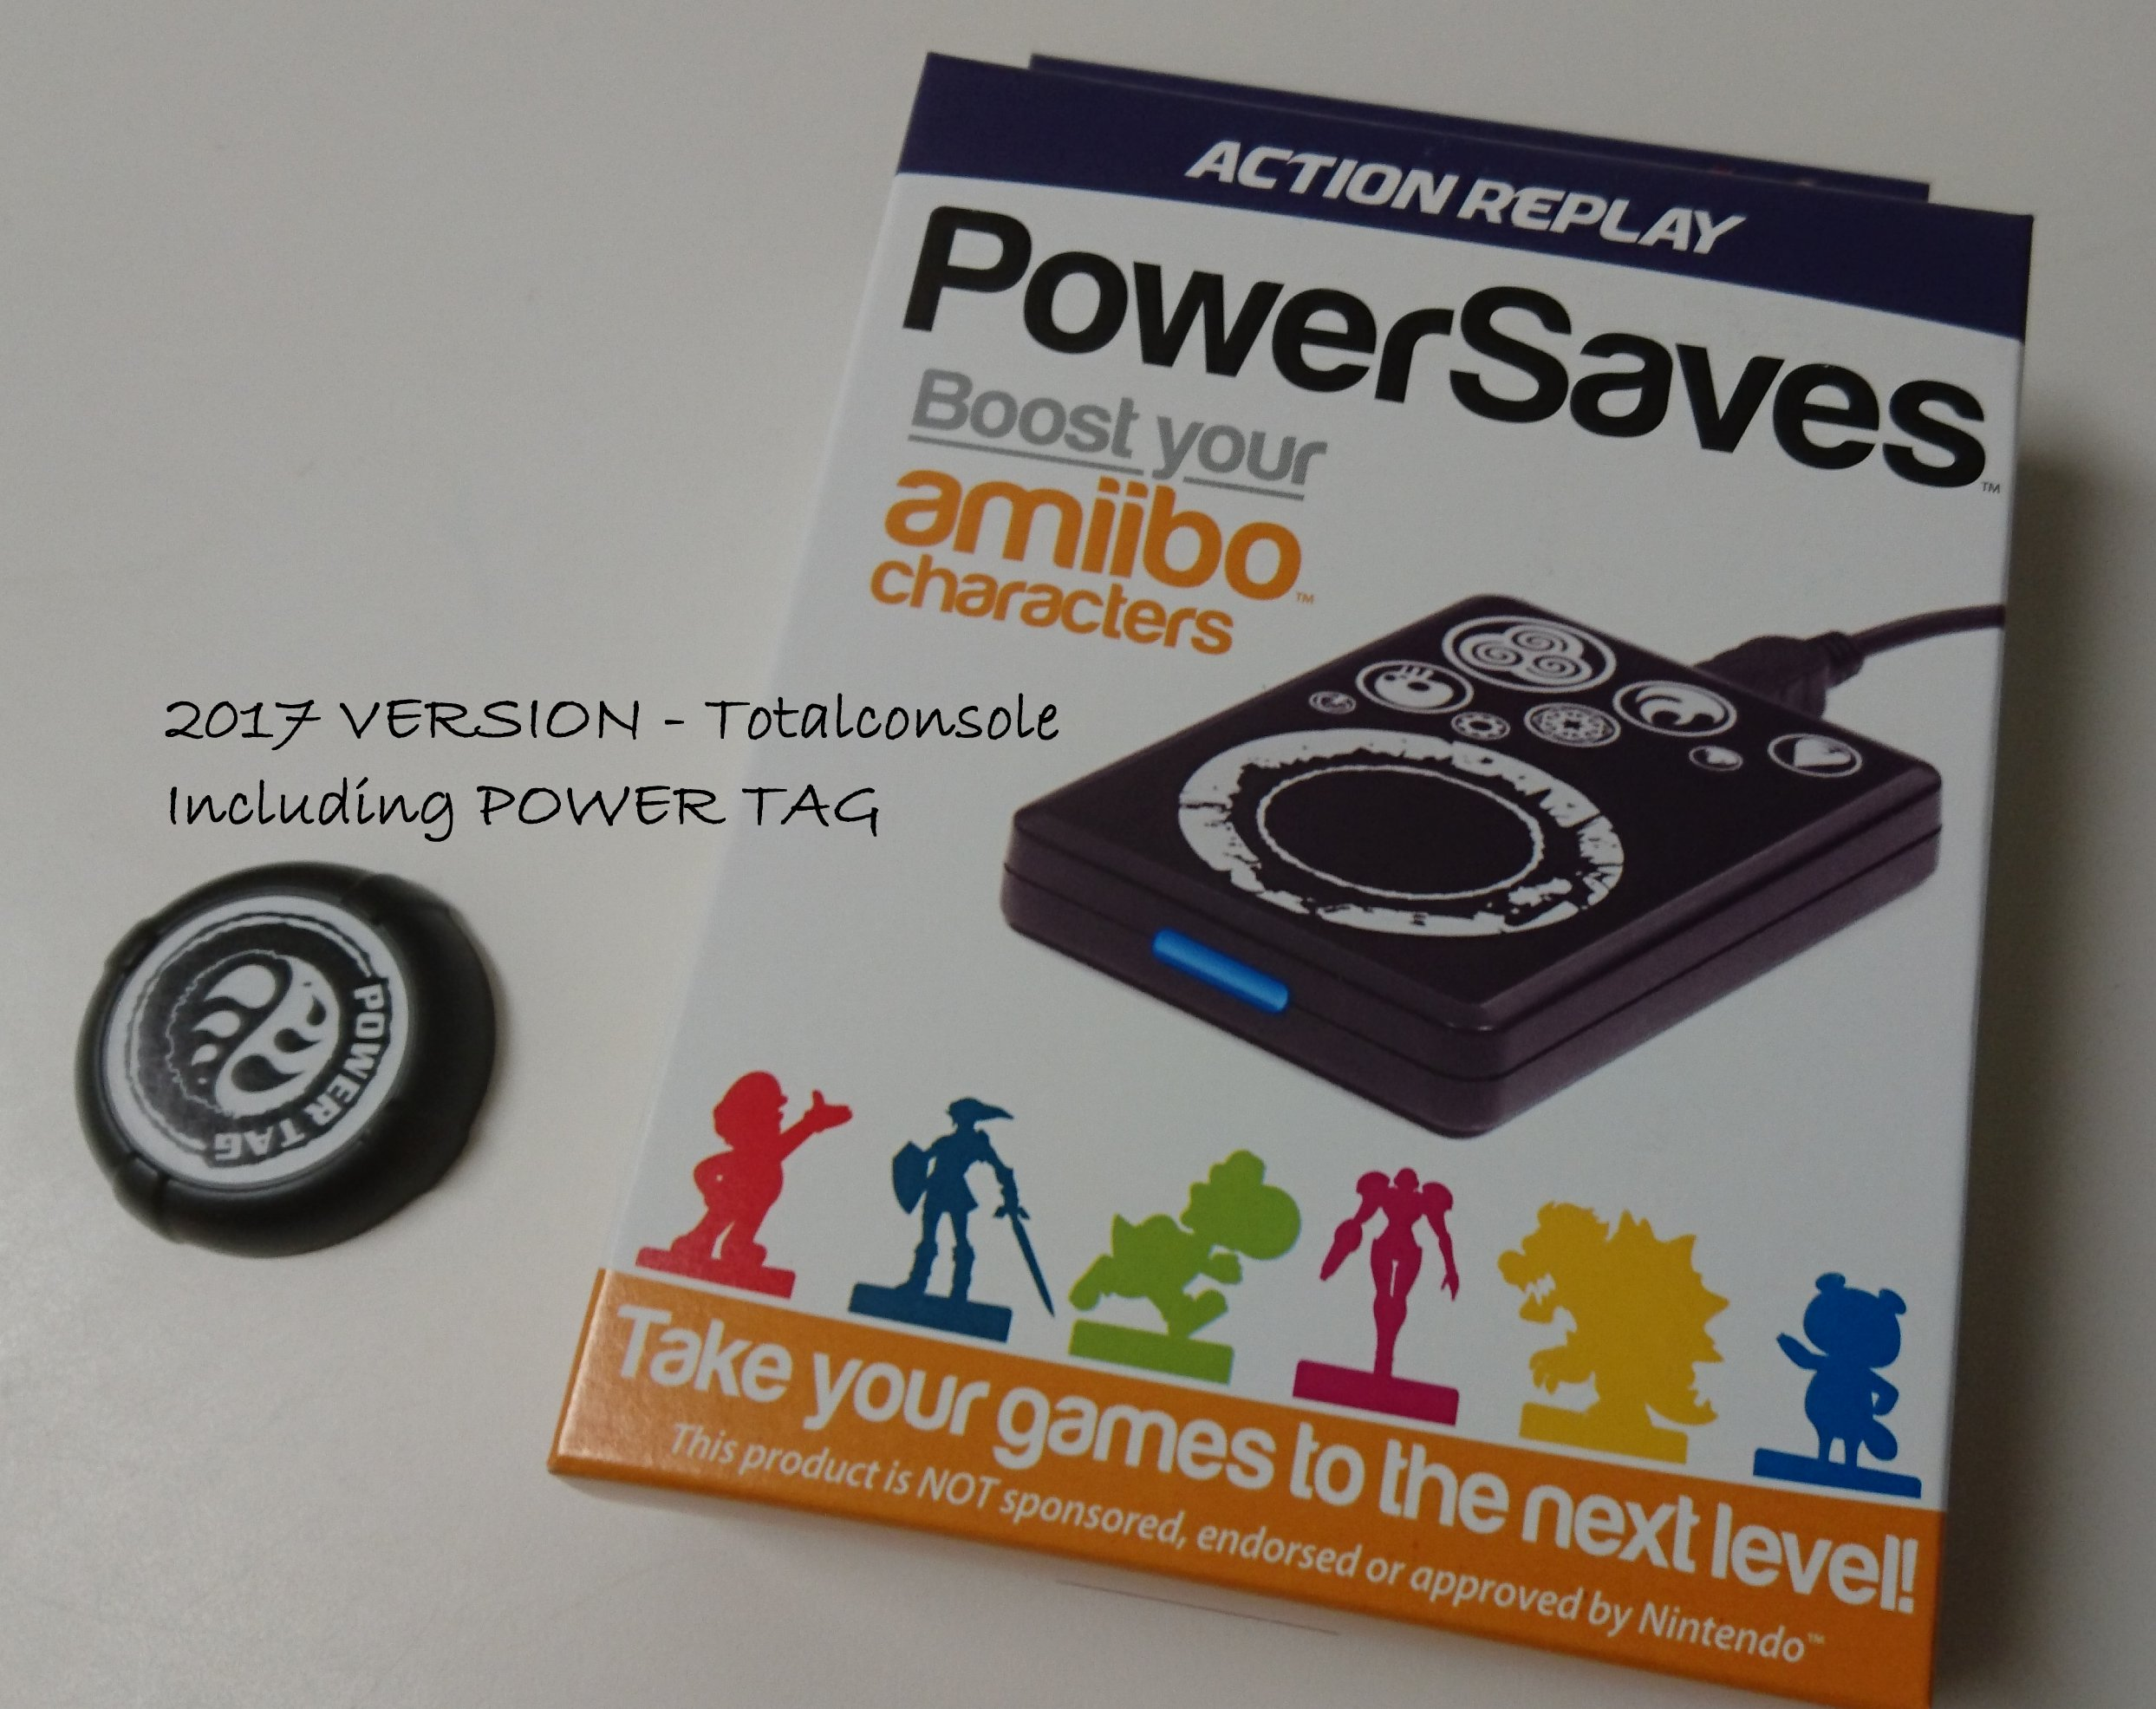 Action Replay PowerSaves for Amiibo™ with POWER TAG